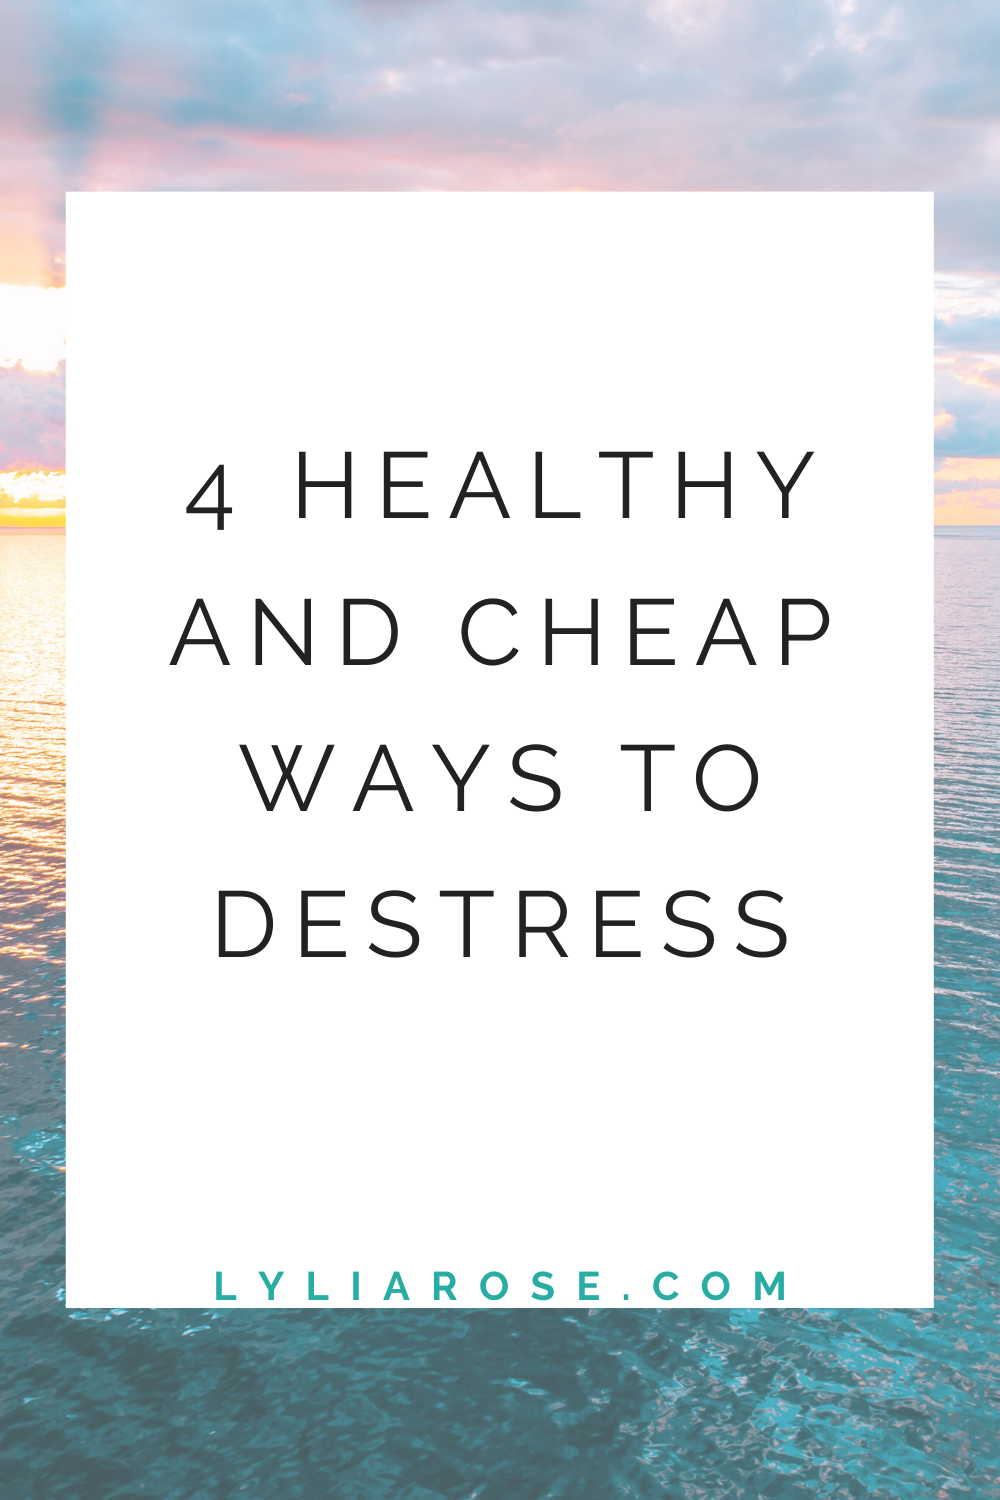 4 healthy and cheap ways to destress (1)